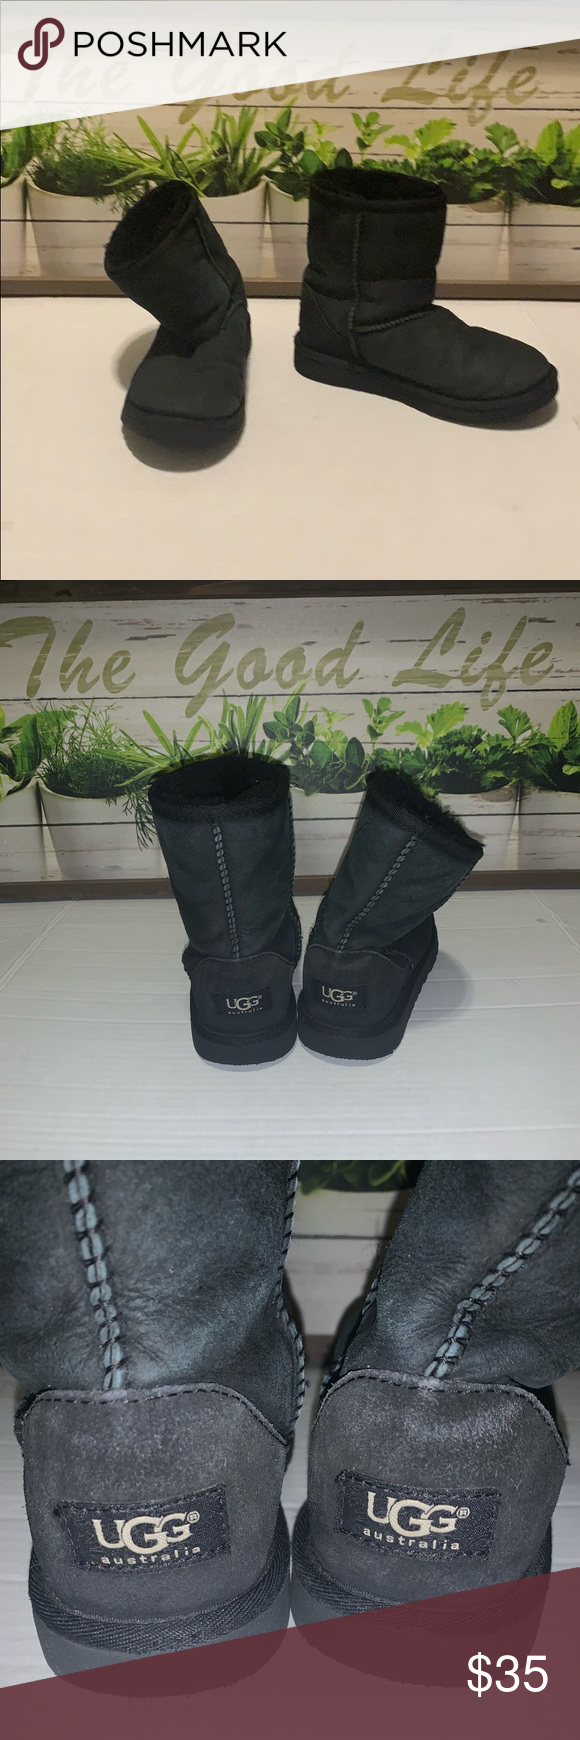 Ugg girls boots Off black very worn but great preowned condition UGG Shoes Boots #uggbootsoutfitblackgirl